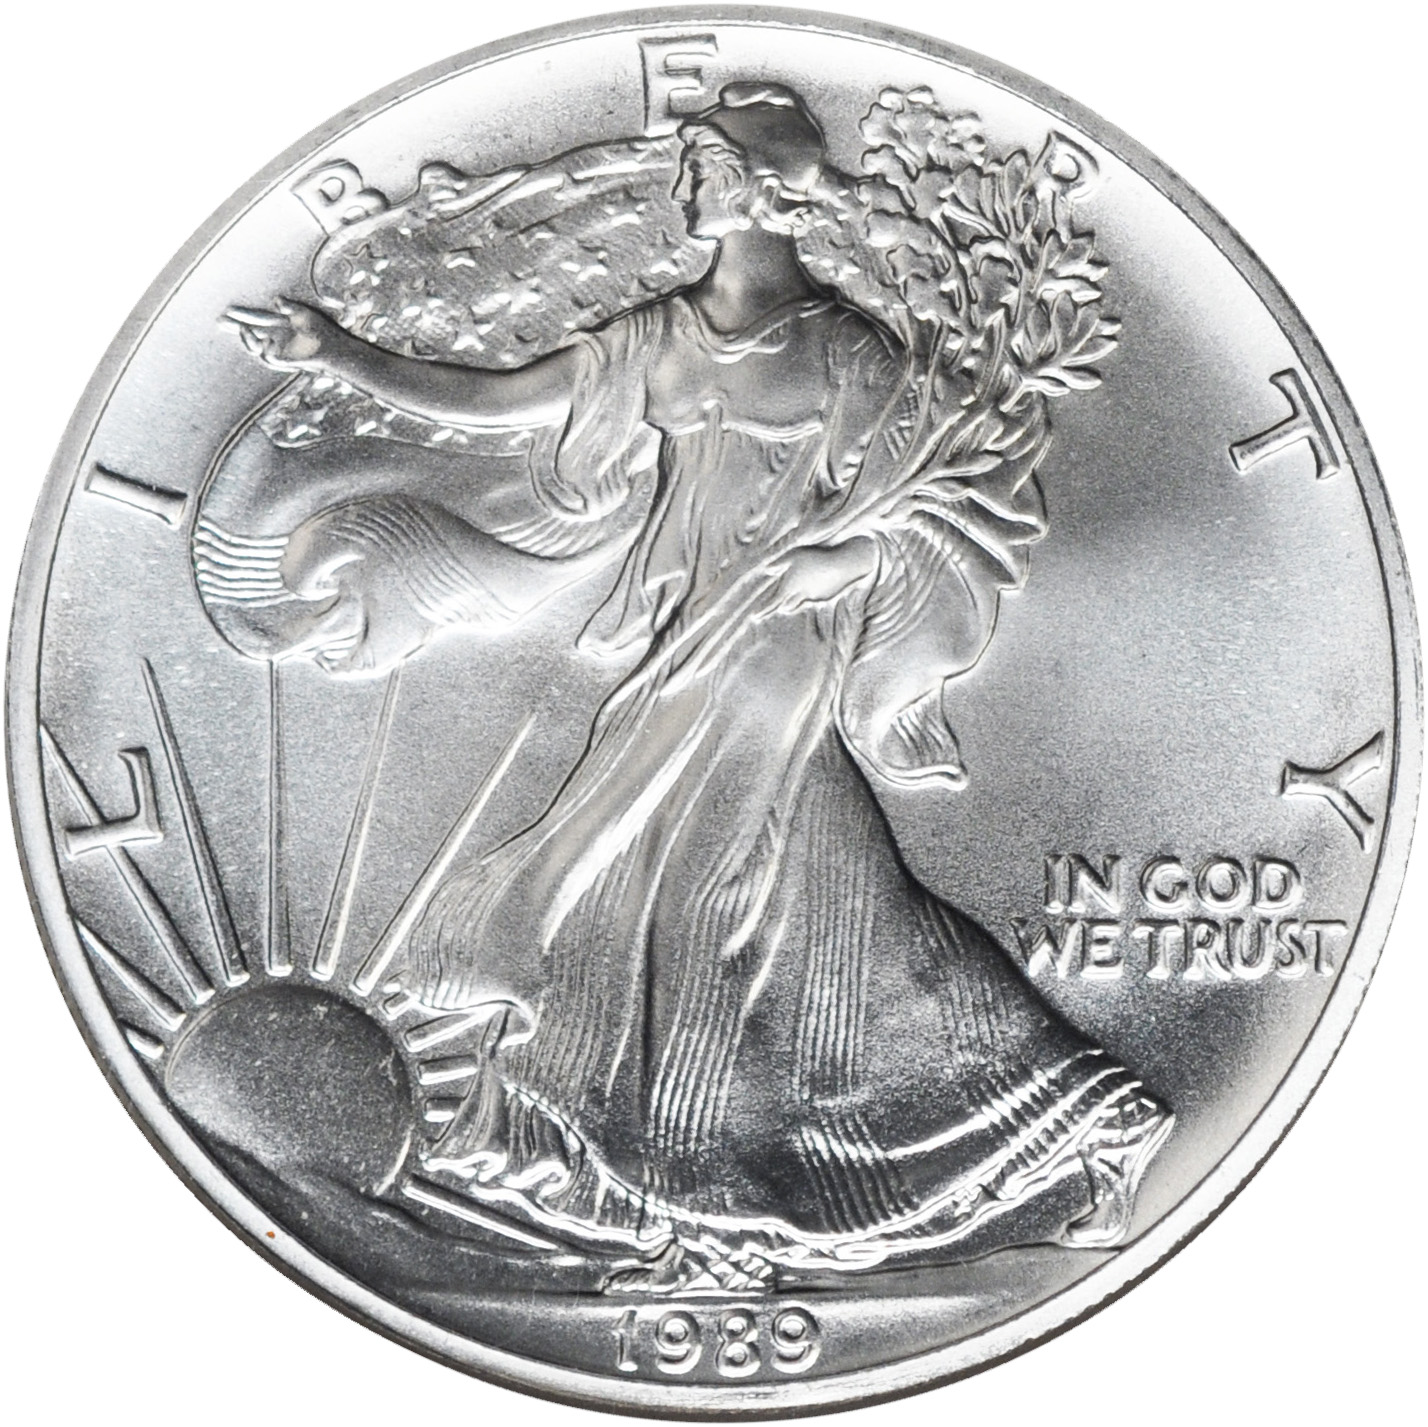 Value Of 1989 $1 Silver Coin